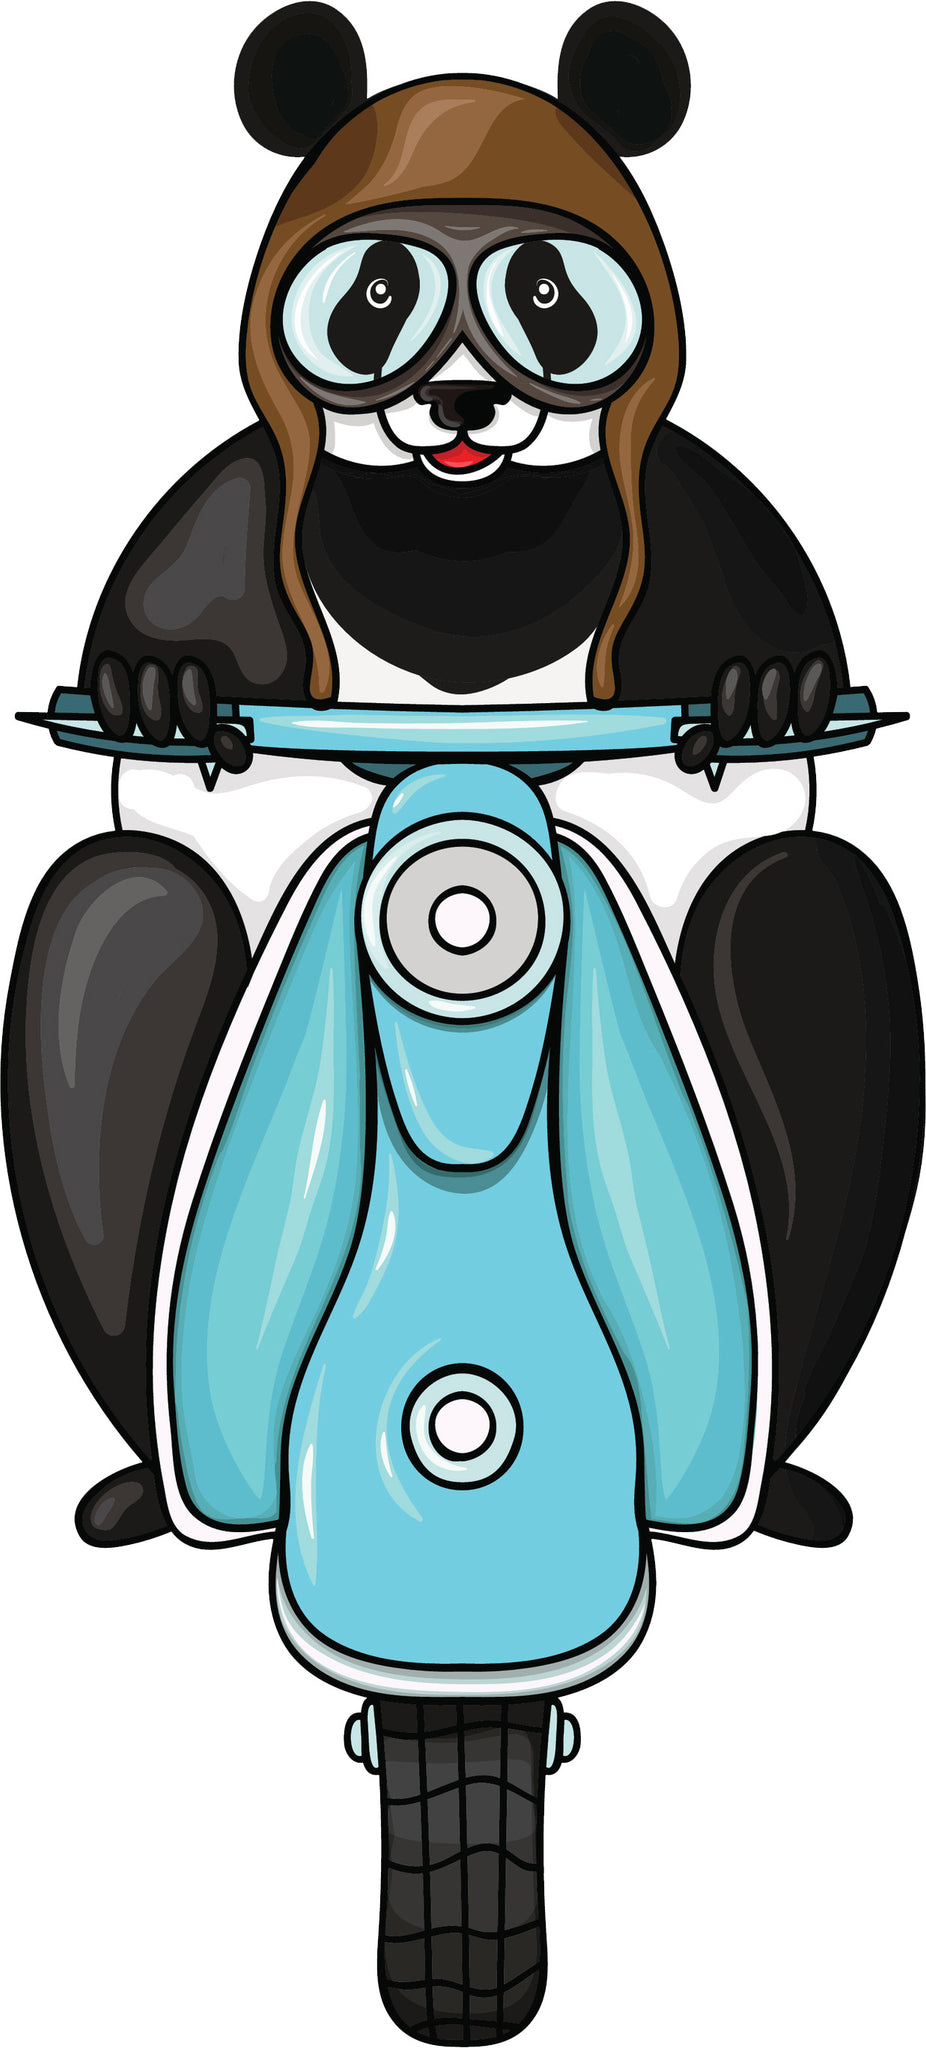 Cute Adorable Black And White Panda Wearing  Hat Goggles Riding Sky Blue Vespa Cartoon Vinyl Decal Sticker